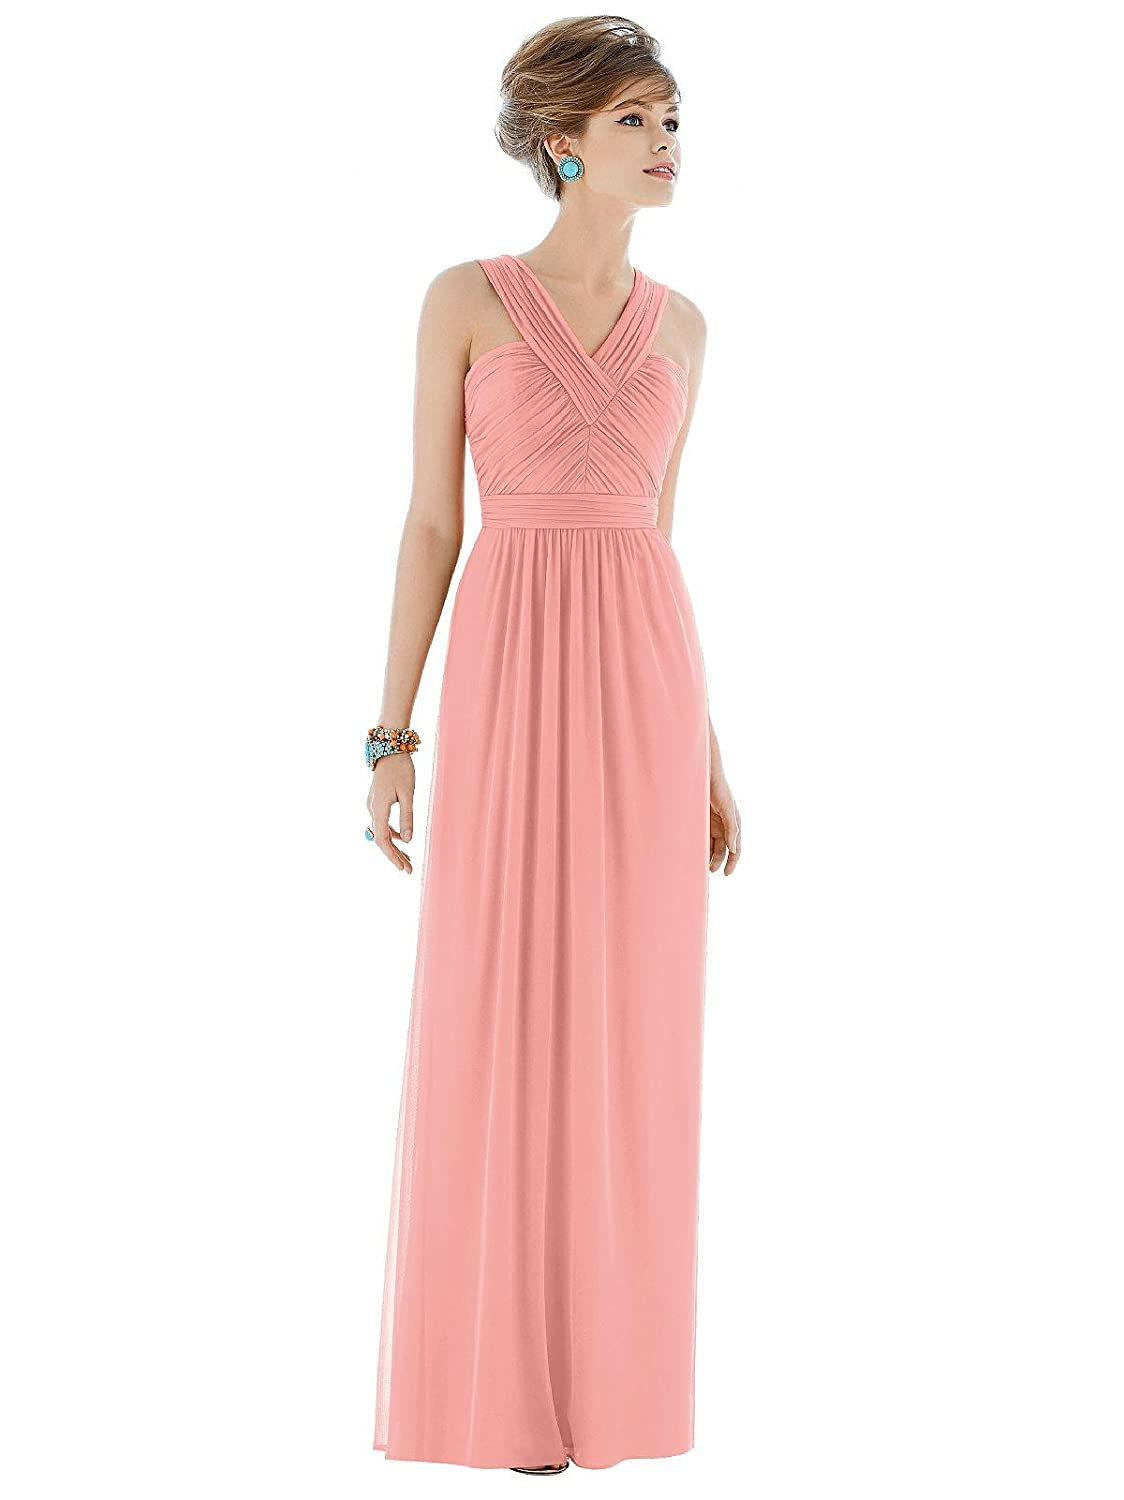 4b0f1c08156d0 ELEGANT CHIFFON BRIDESMAID DRESS - Wispy and sheer, this dress has a silky  soft finish that gives a unique effortlessly flawless look.